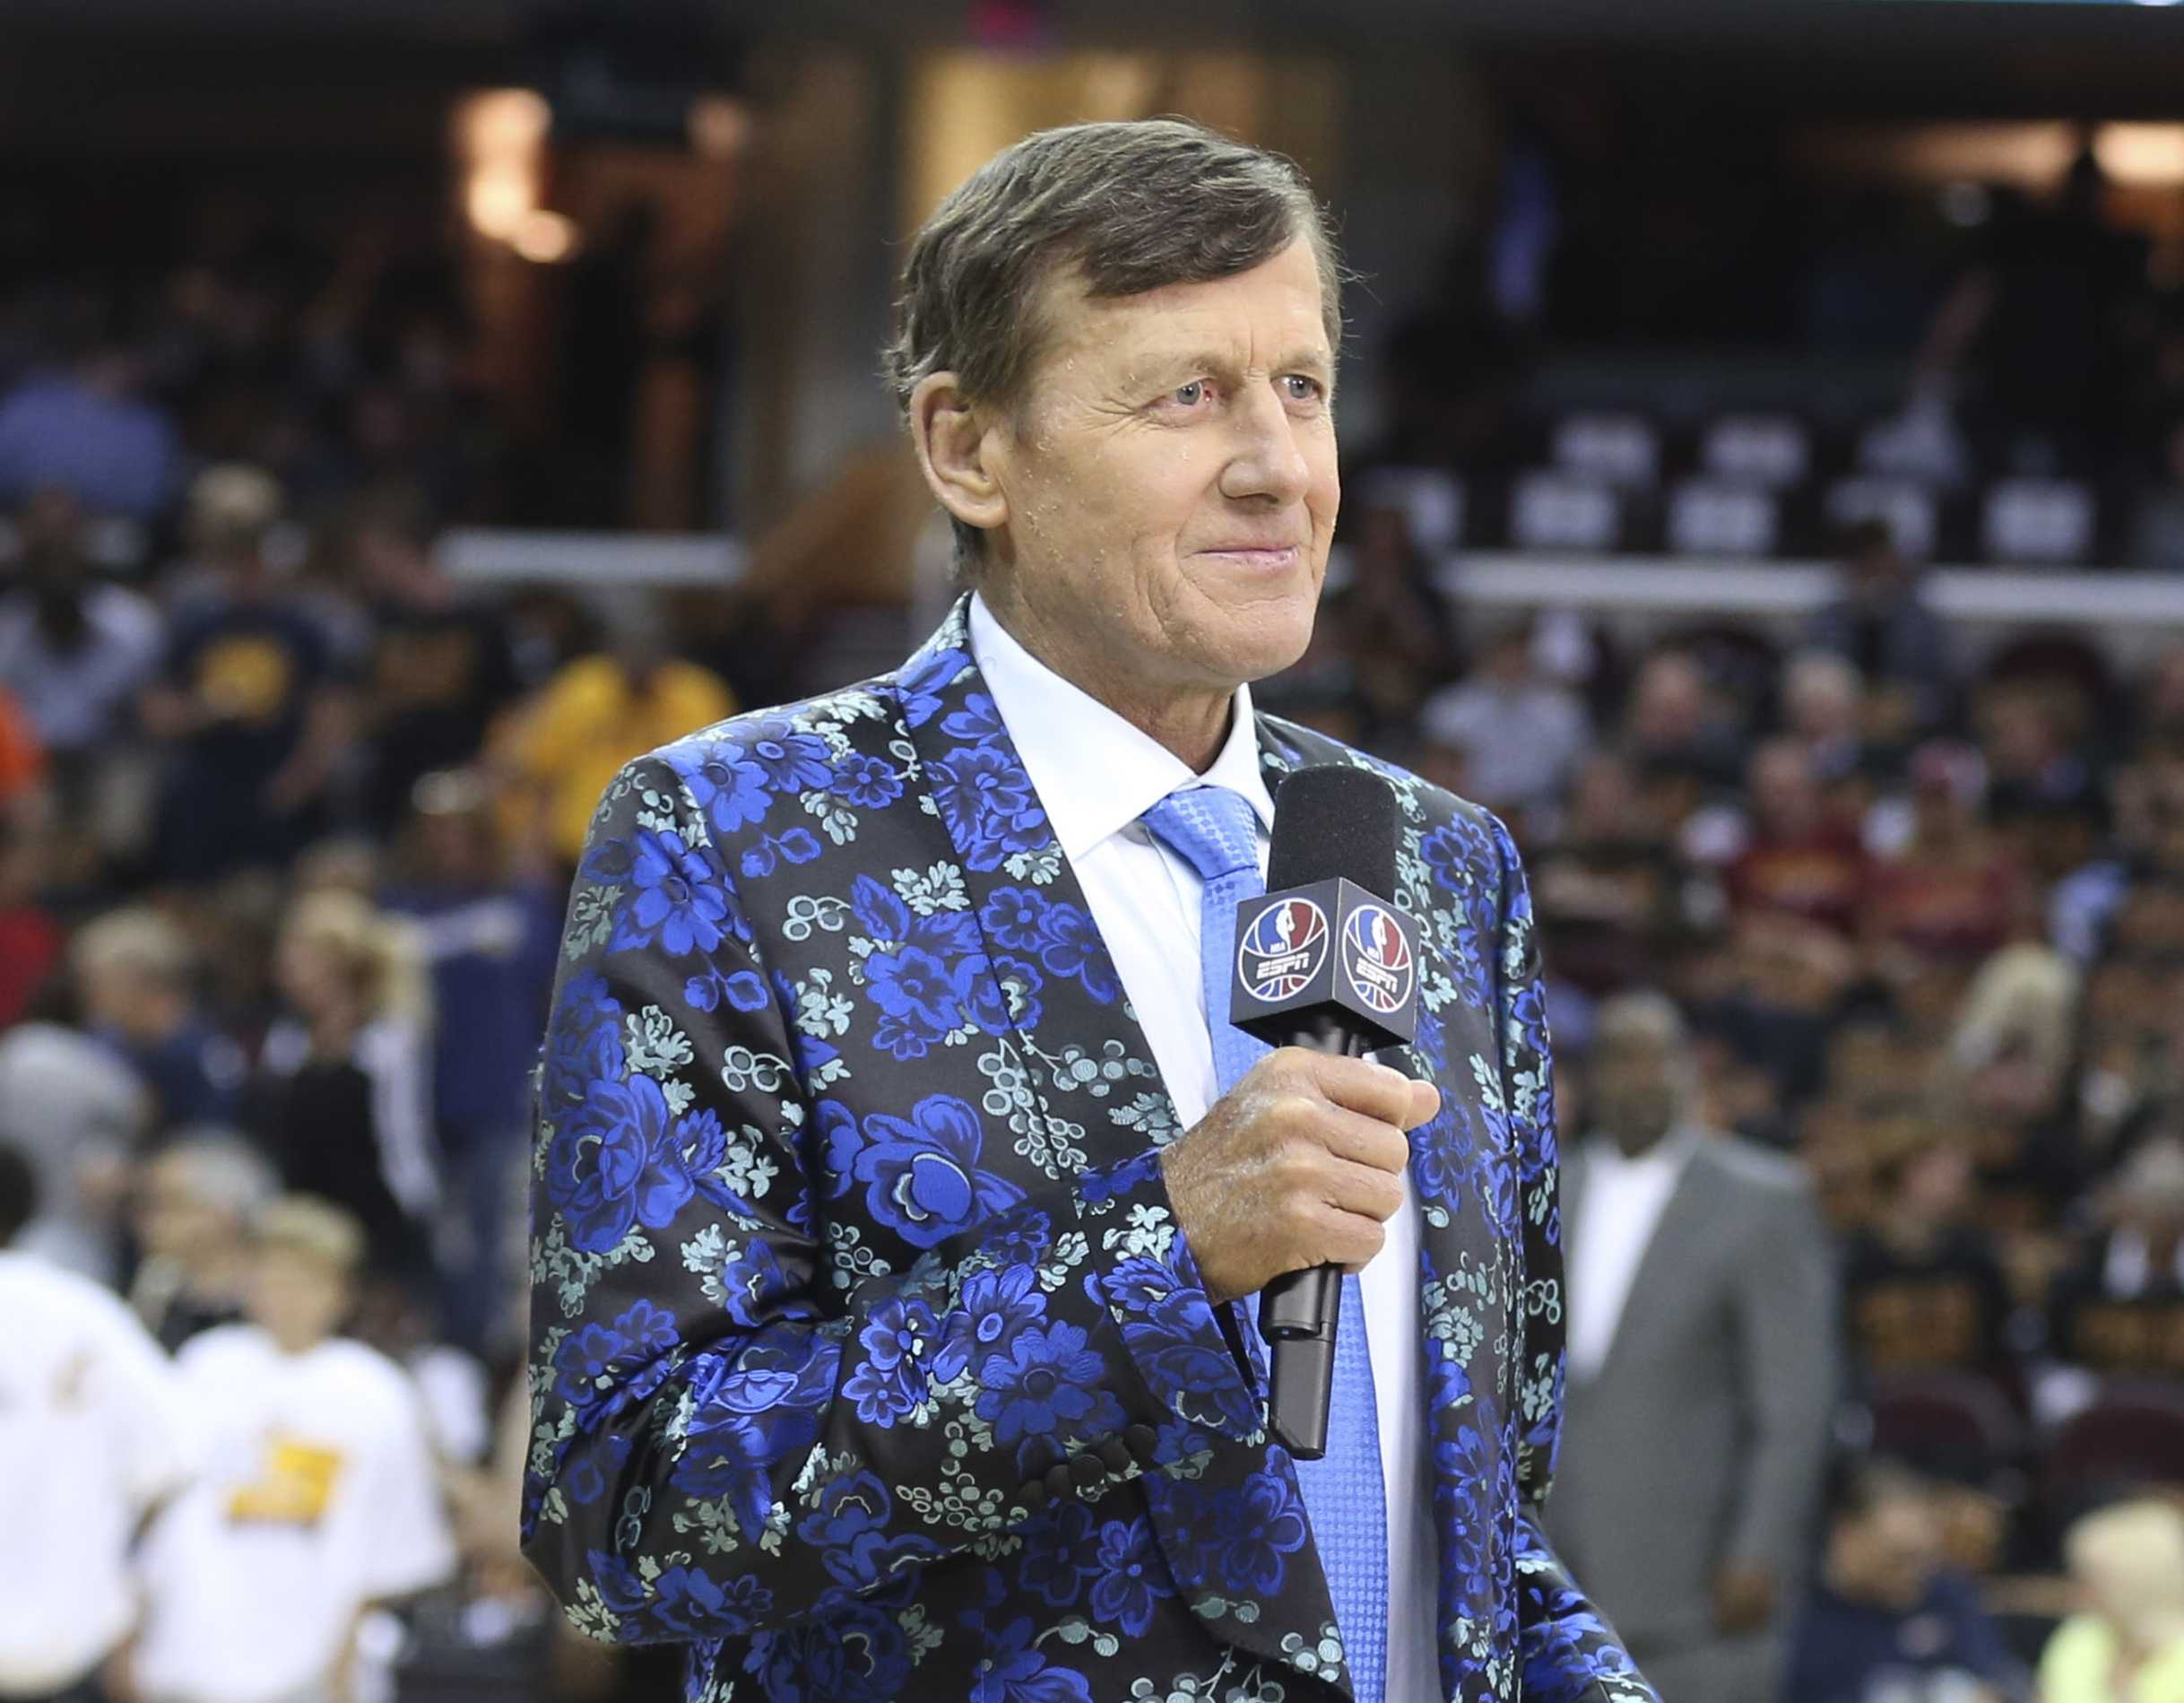 Reporter Craig Sager on the court before the Cleveland Cavaliers take on the Golden State Warriors in Game 6 of the NBA Finals on June 16 in Cleveland.